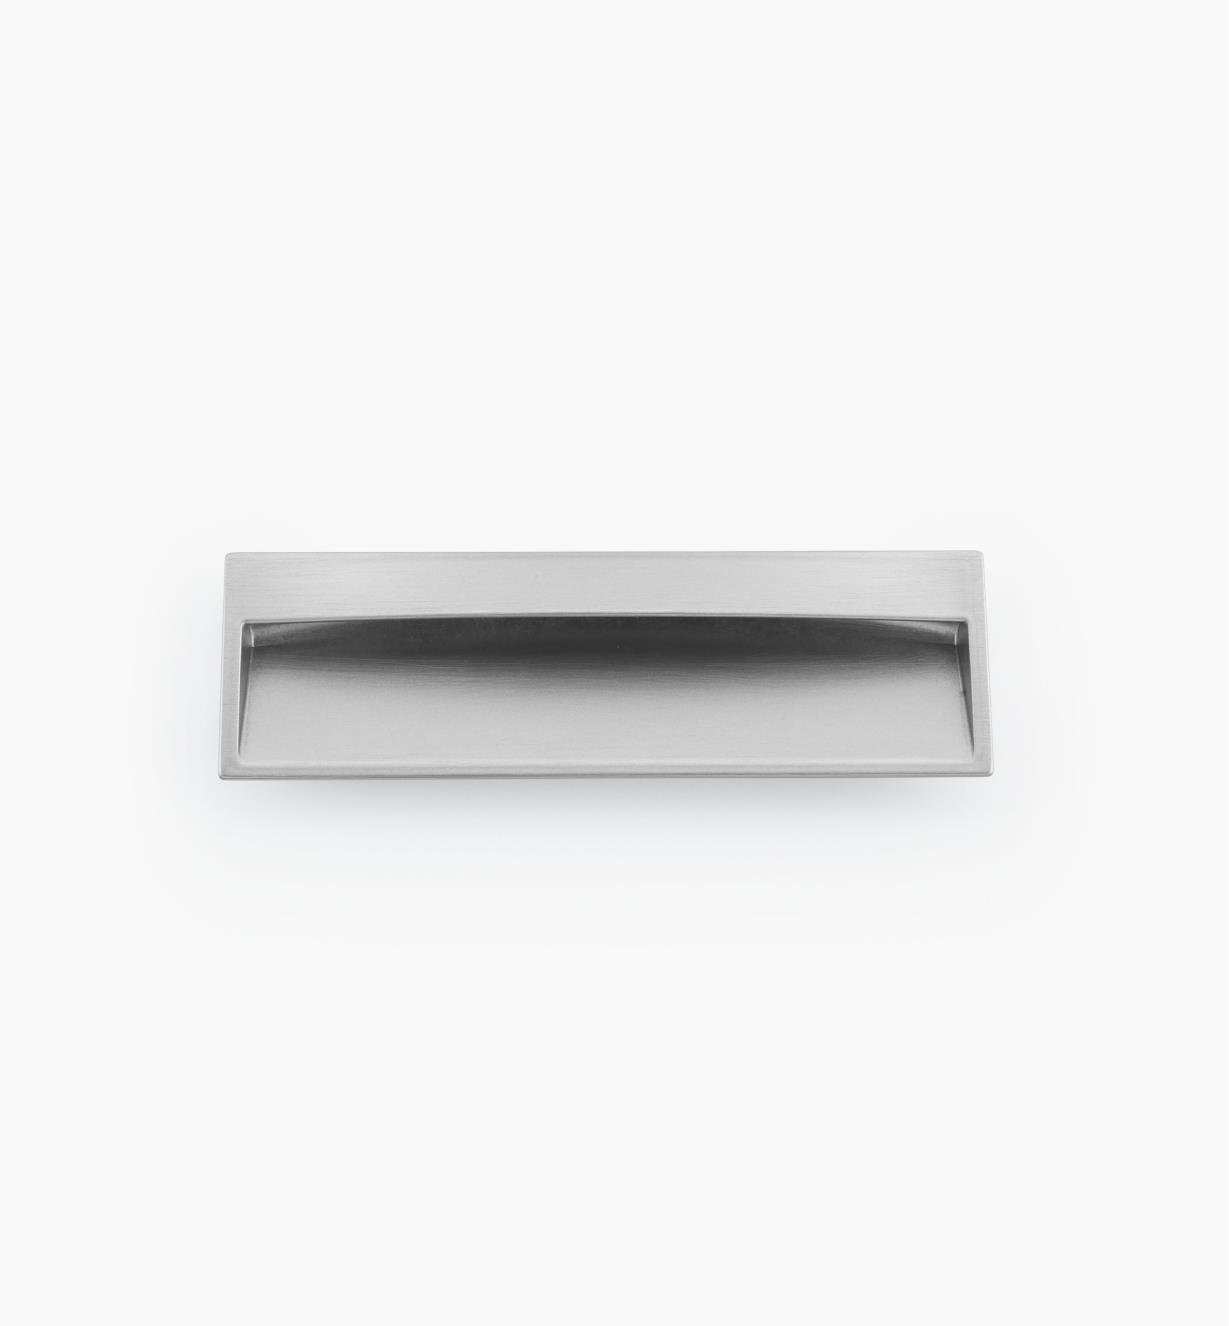 02W3961 - Dark Brown Recess Pull, 170mm x 52mm